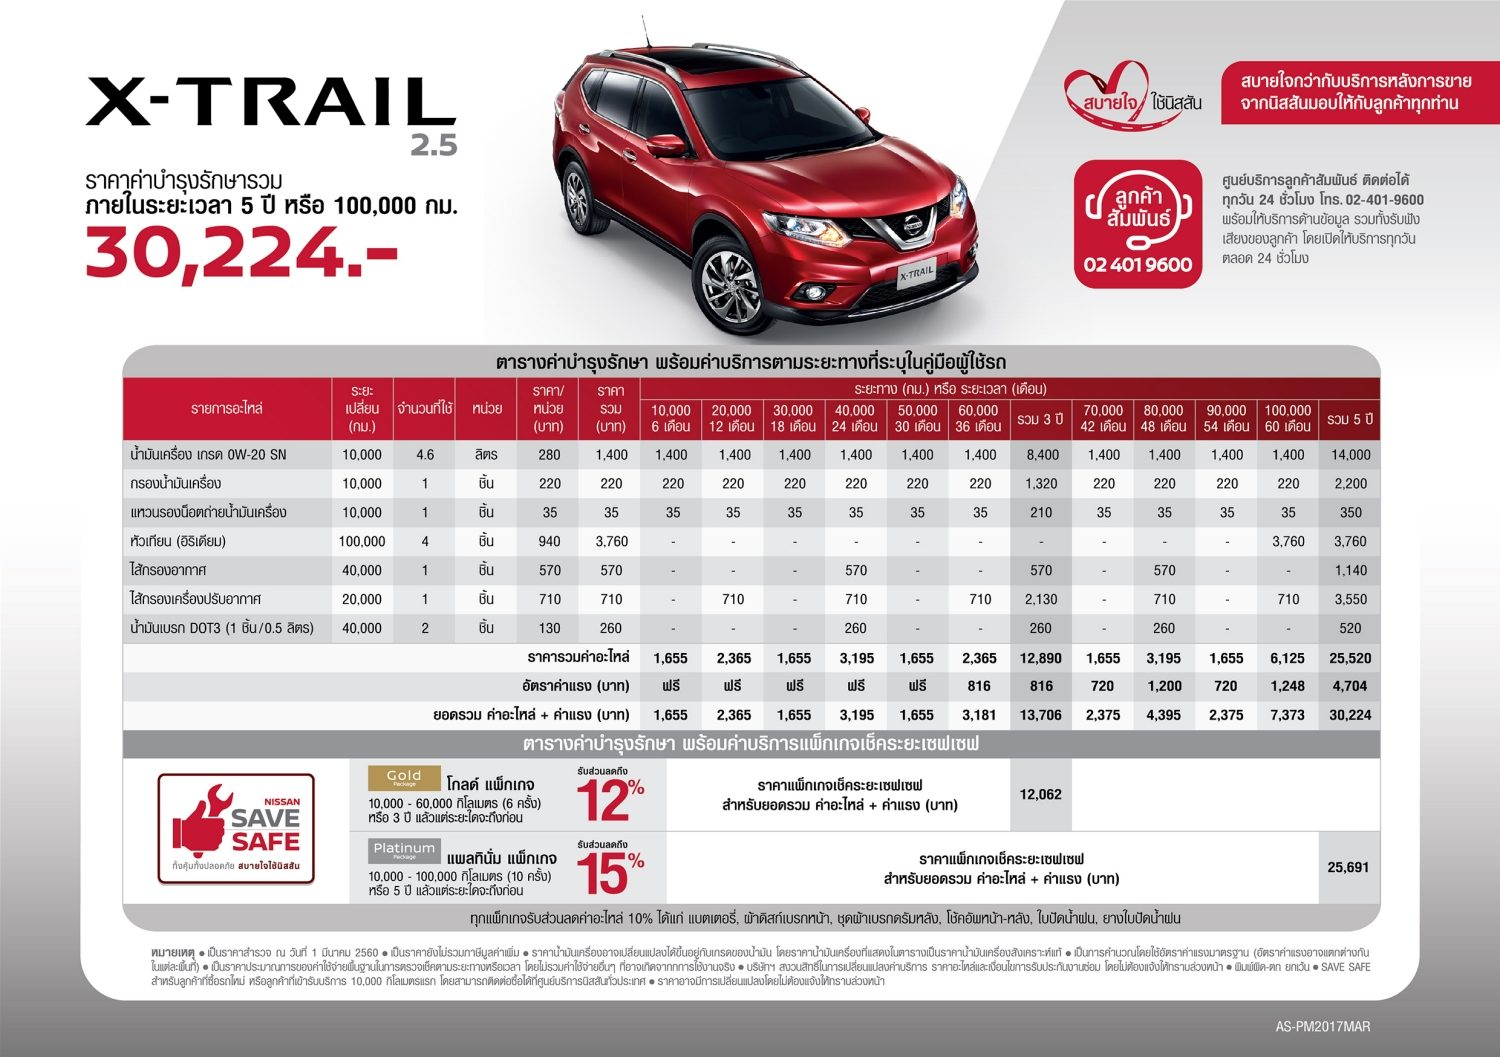 X-Trail Maintenance Cost